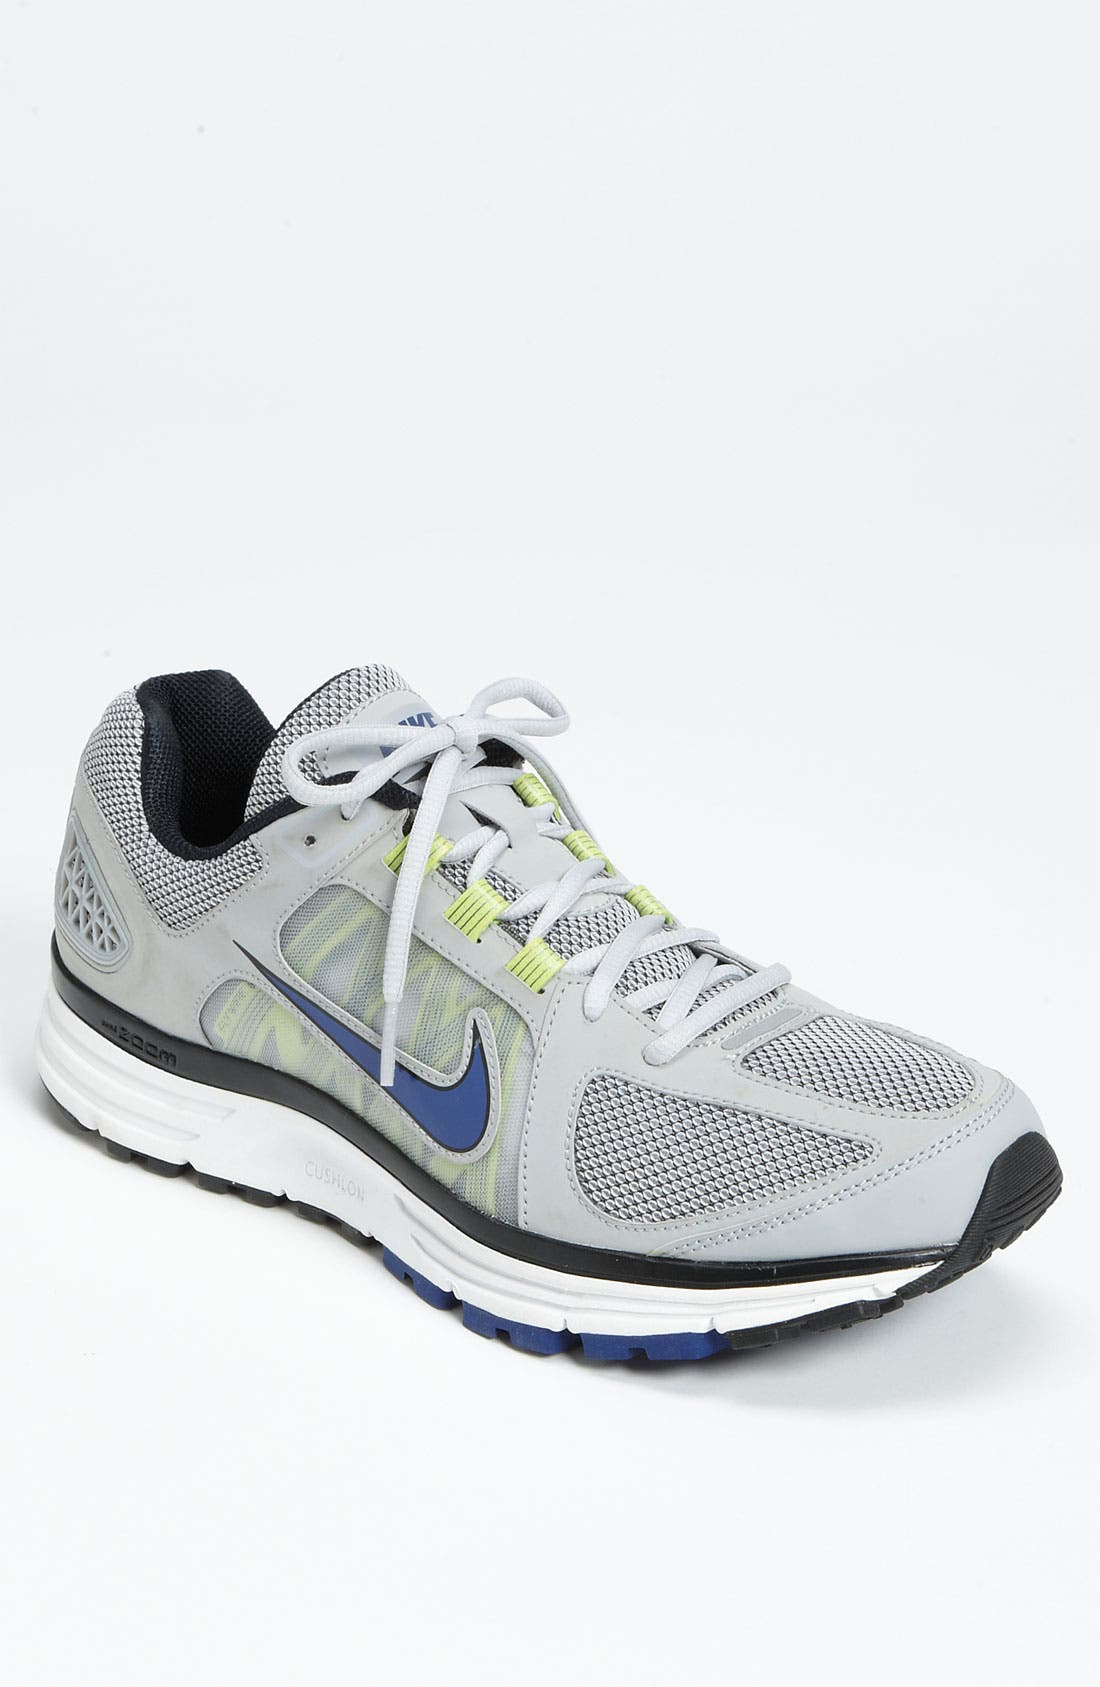 Main Image - Nike 'Zoom Vomero+ 7' Running Shoe (Men)